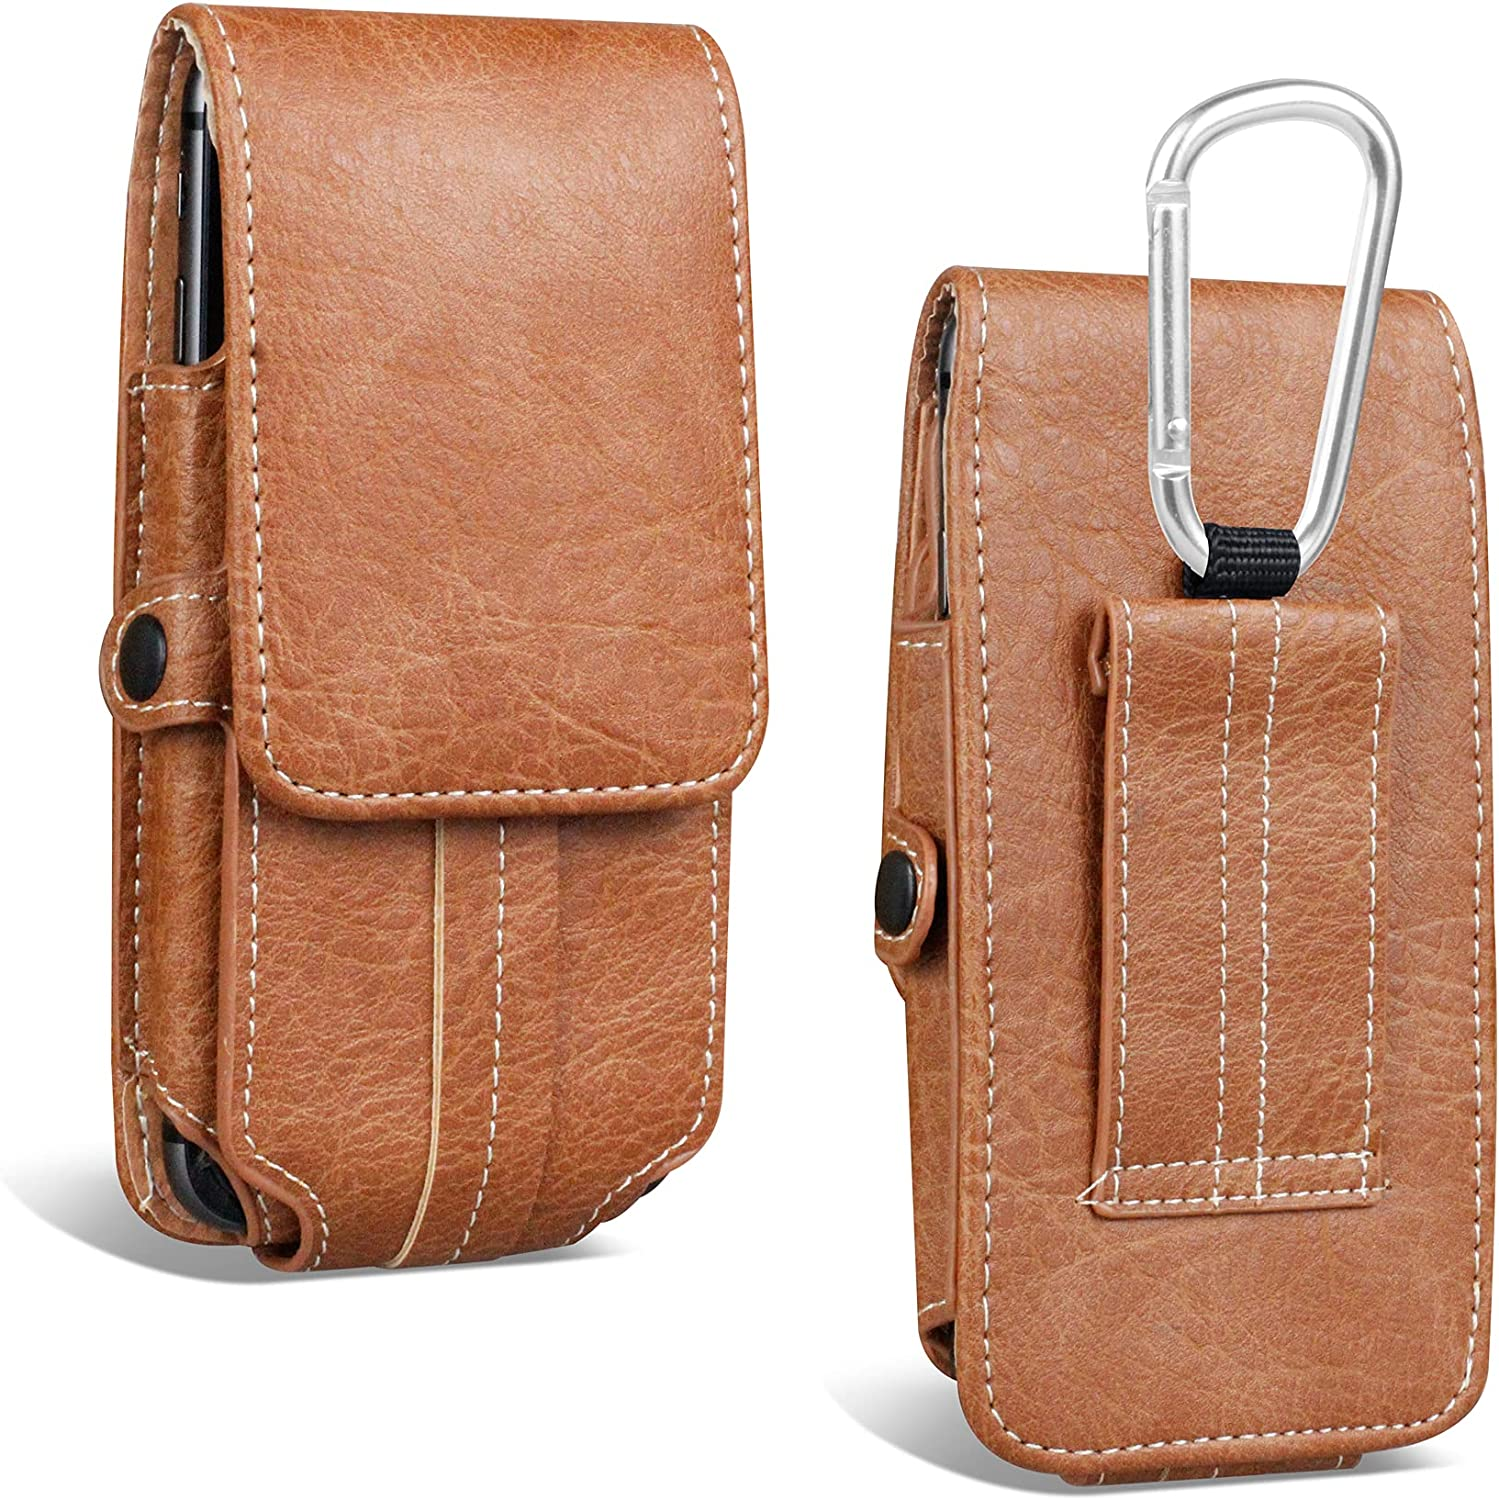 Phone Holster Designed for iPhone 12 11 pro max,Belt Case with Belt Clip XXL Large Phone Holder Pouch Compatible with iPhone 12 11/XR/XS/X,7 8+,Samsung Galaxy A22,A32,J8,A51 with 2 Slot Card (Brown)